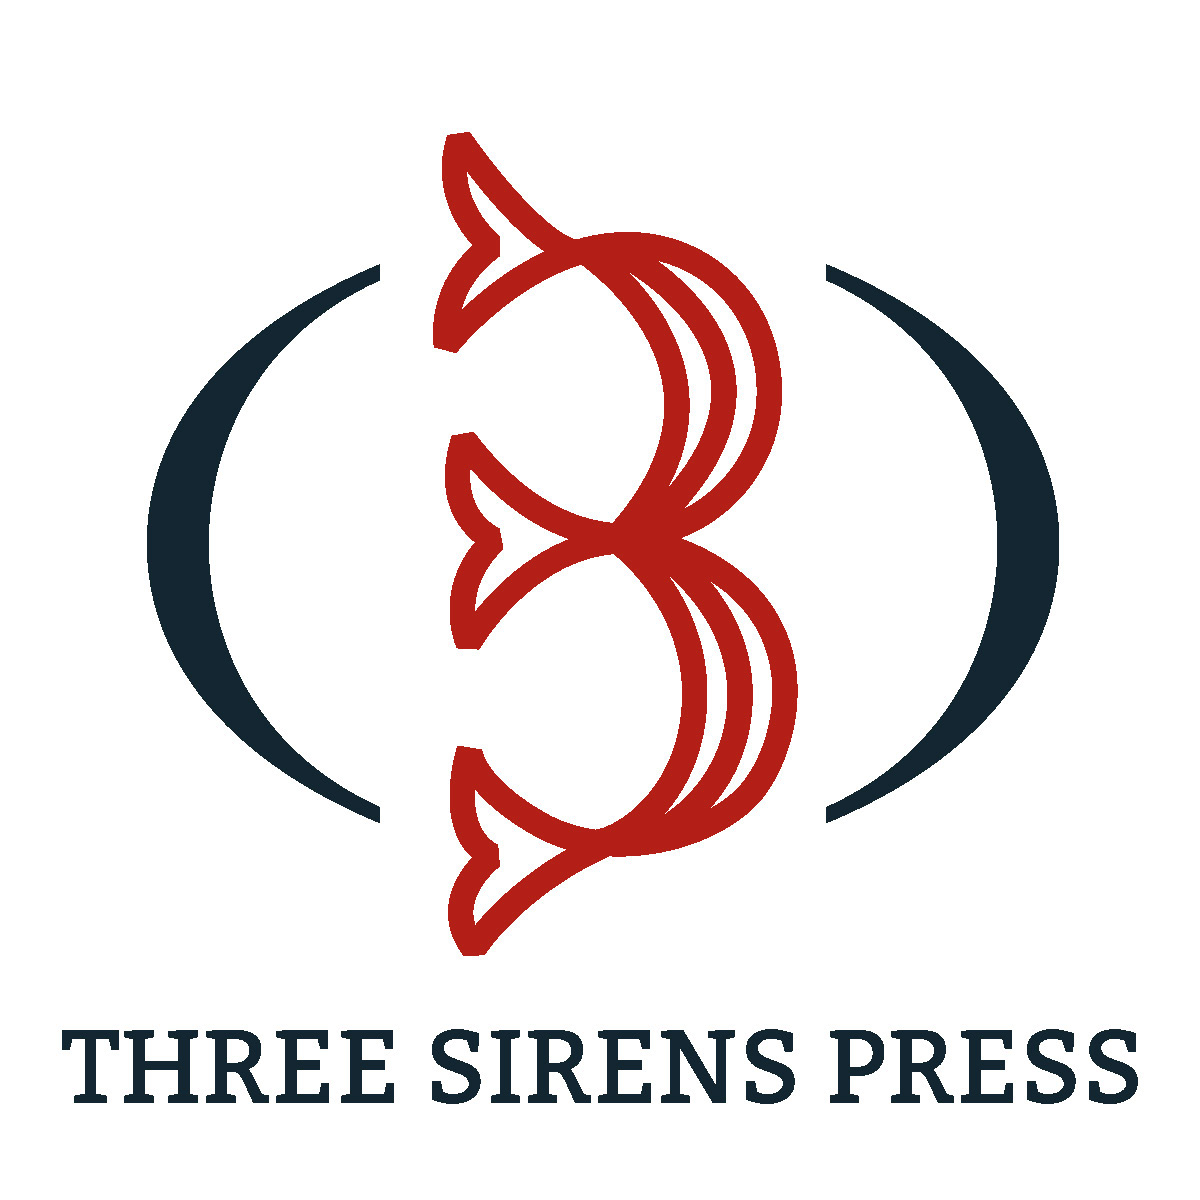 Three sirens press on behance biocorpaavc Images